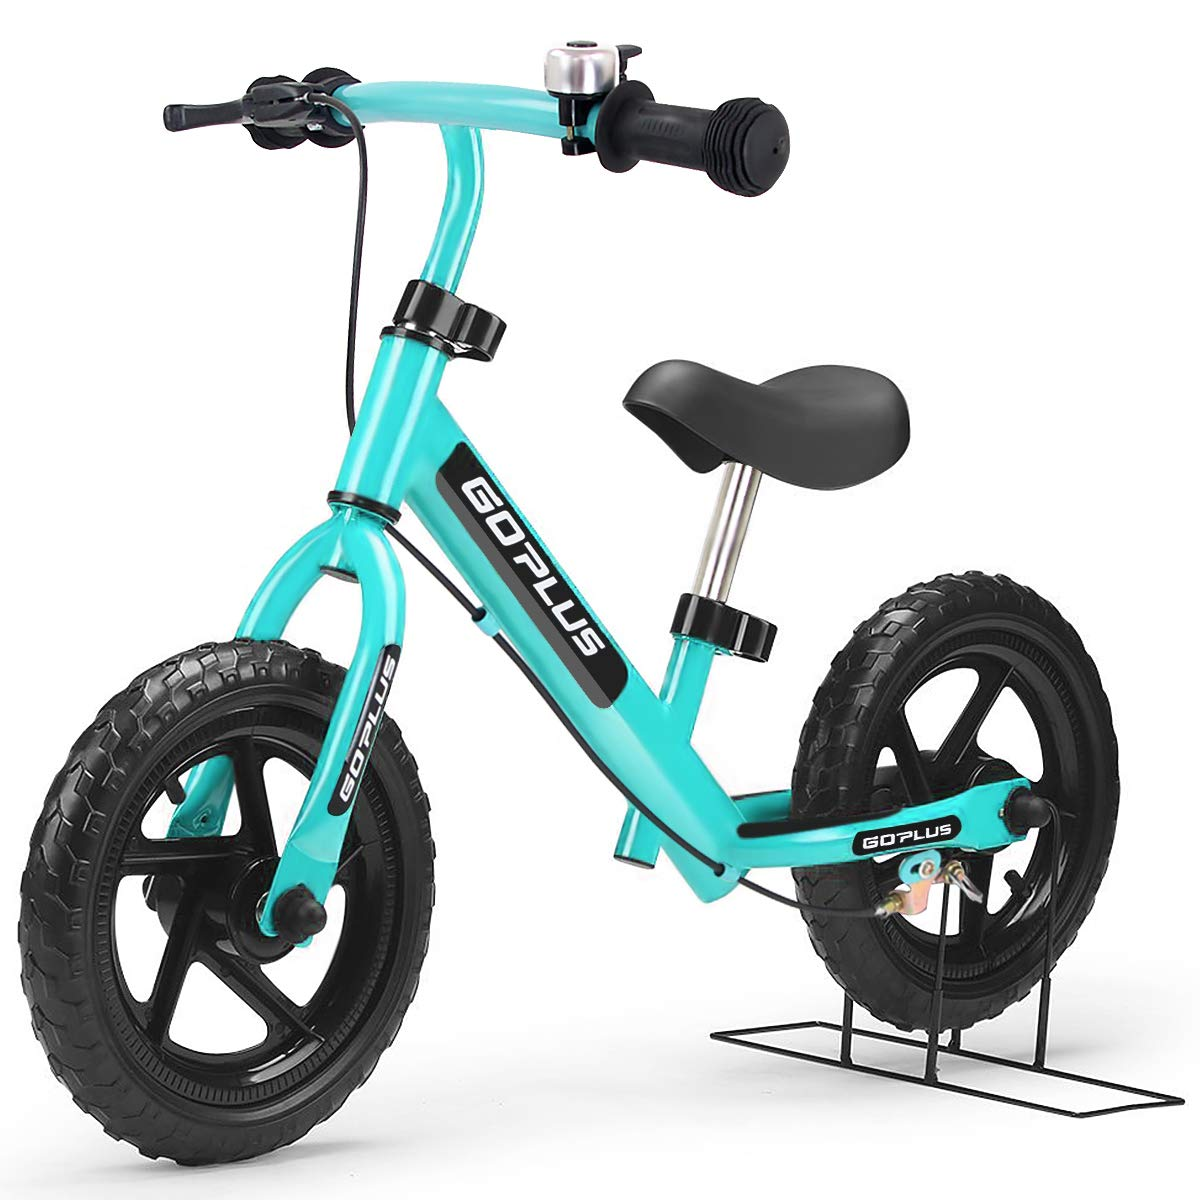 Goplus Balance Bike Kids No-Pedal Learn to Ride Adjustable Height with Bell Ring and Stand for Ages 2 to 6 Years Pre Bike Push Walking Bicycle